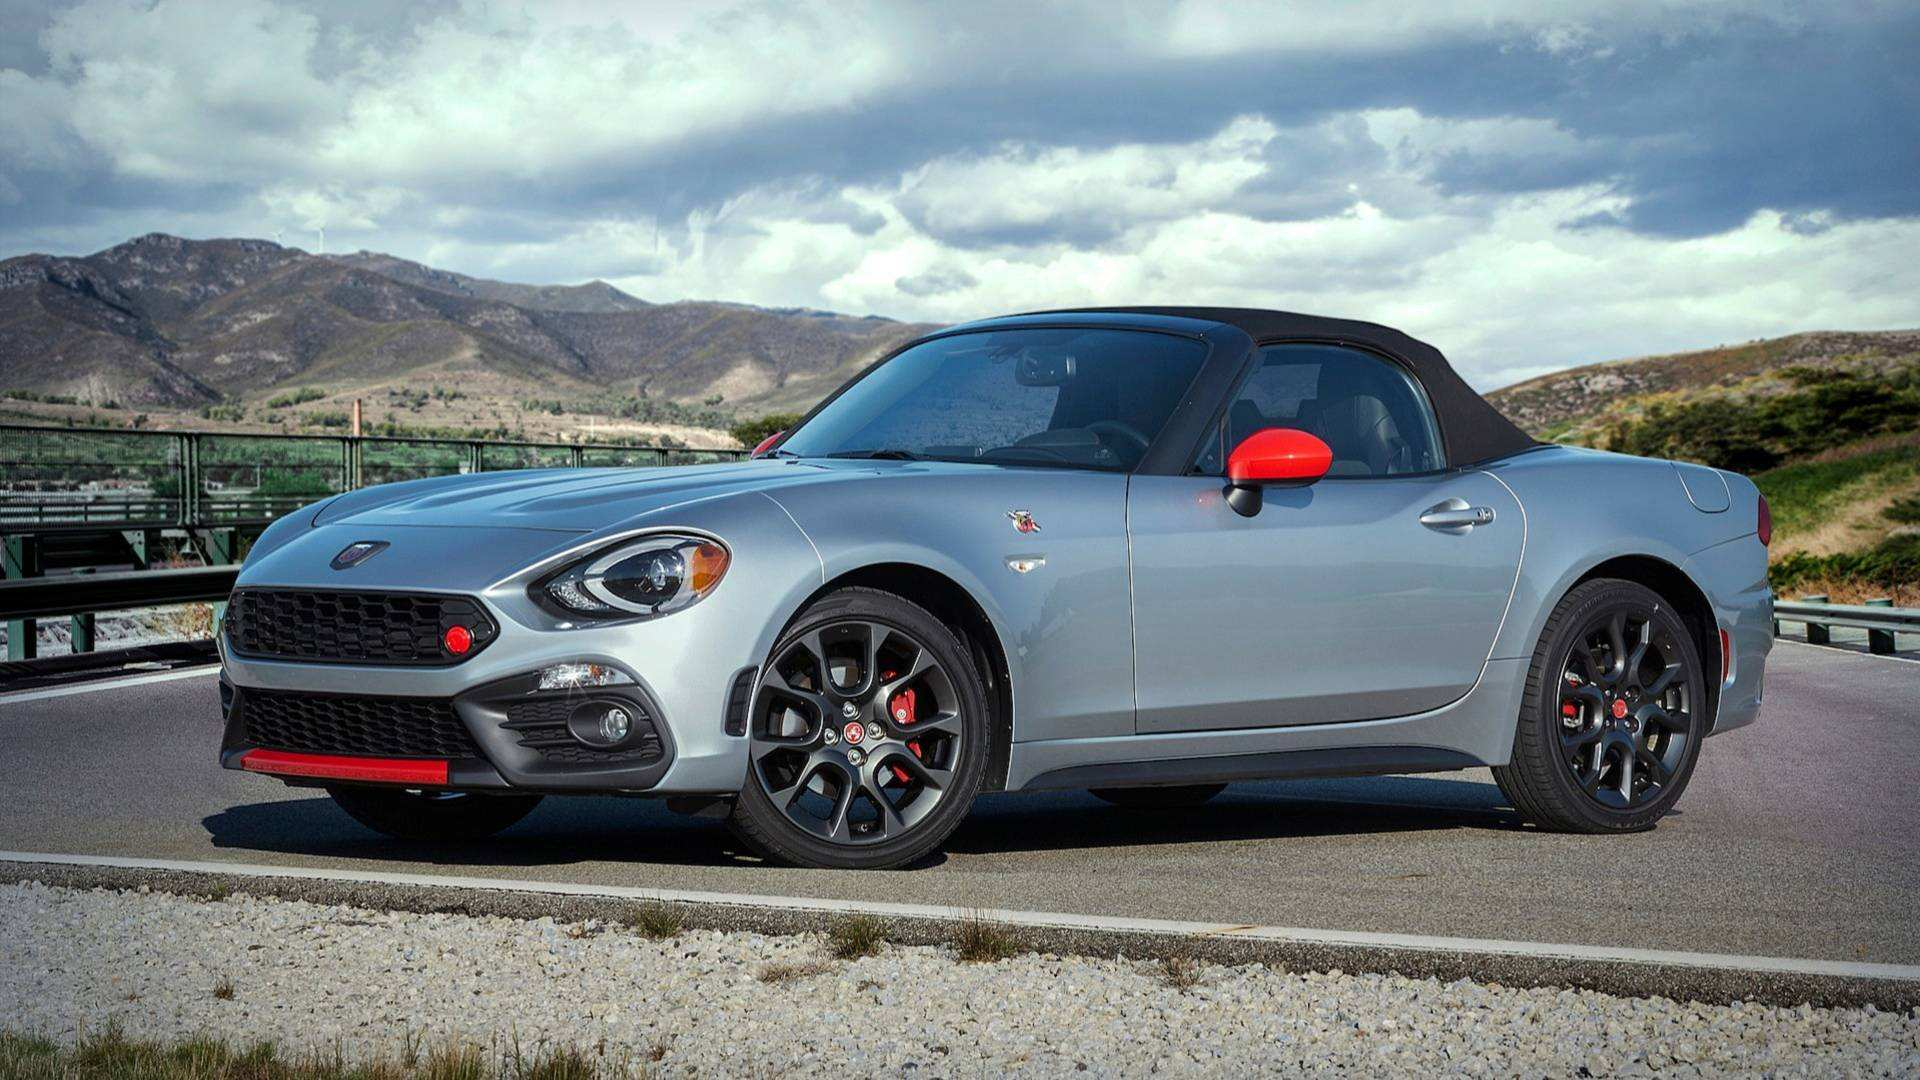 86 Best Review 2019 Fiat 124 Release Date Exterior with 2019 Fiat 124 Release Date